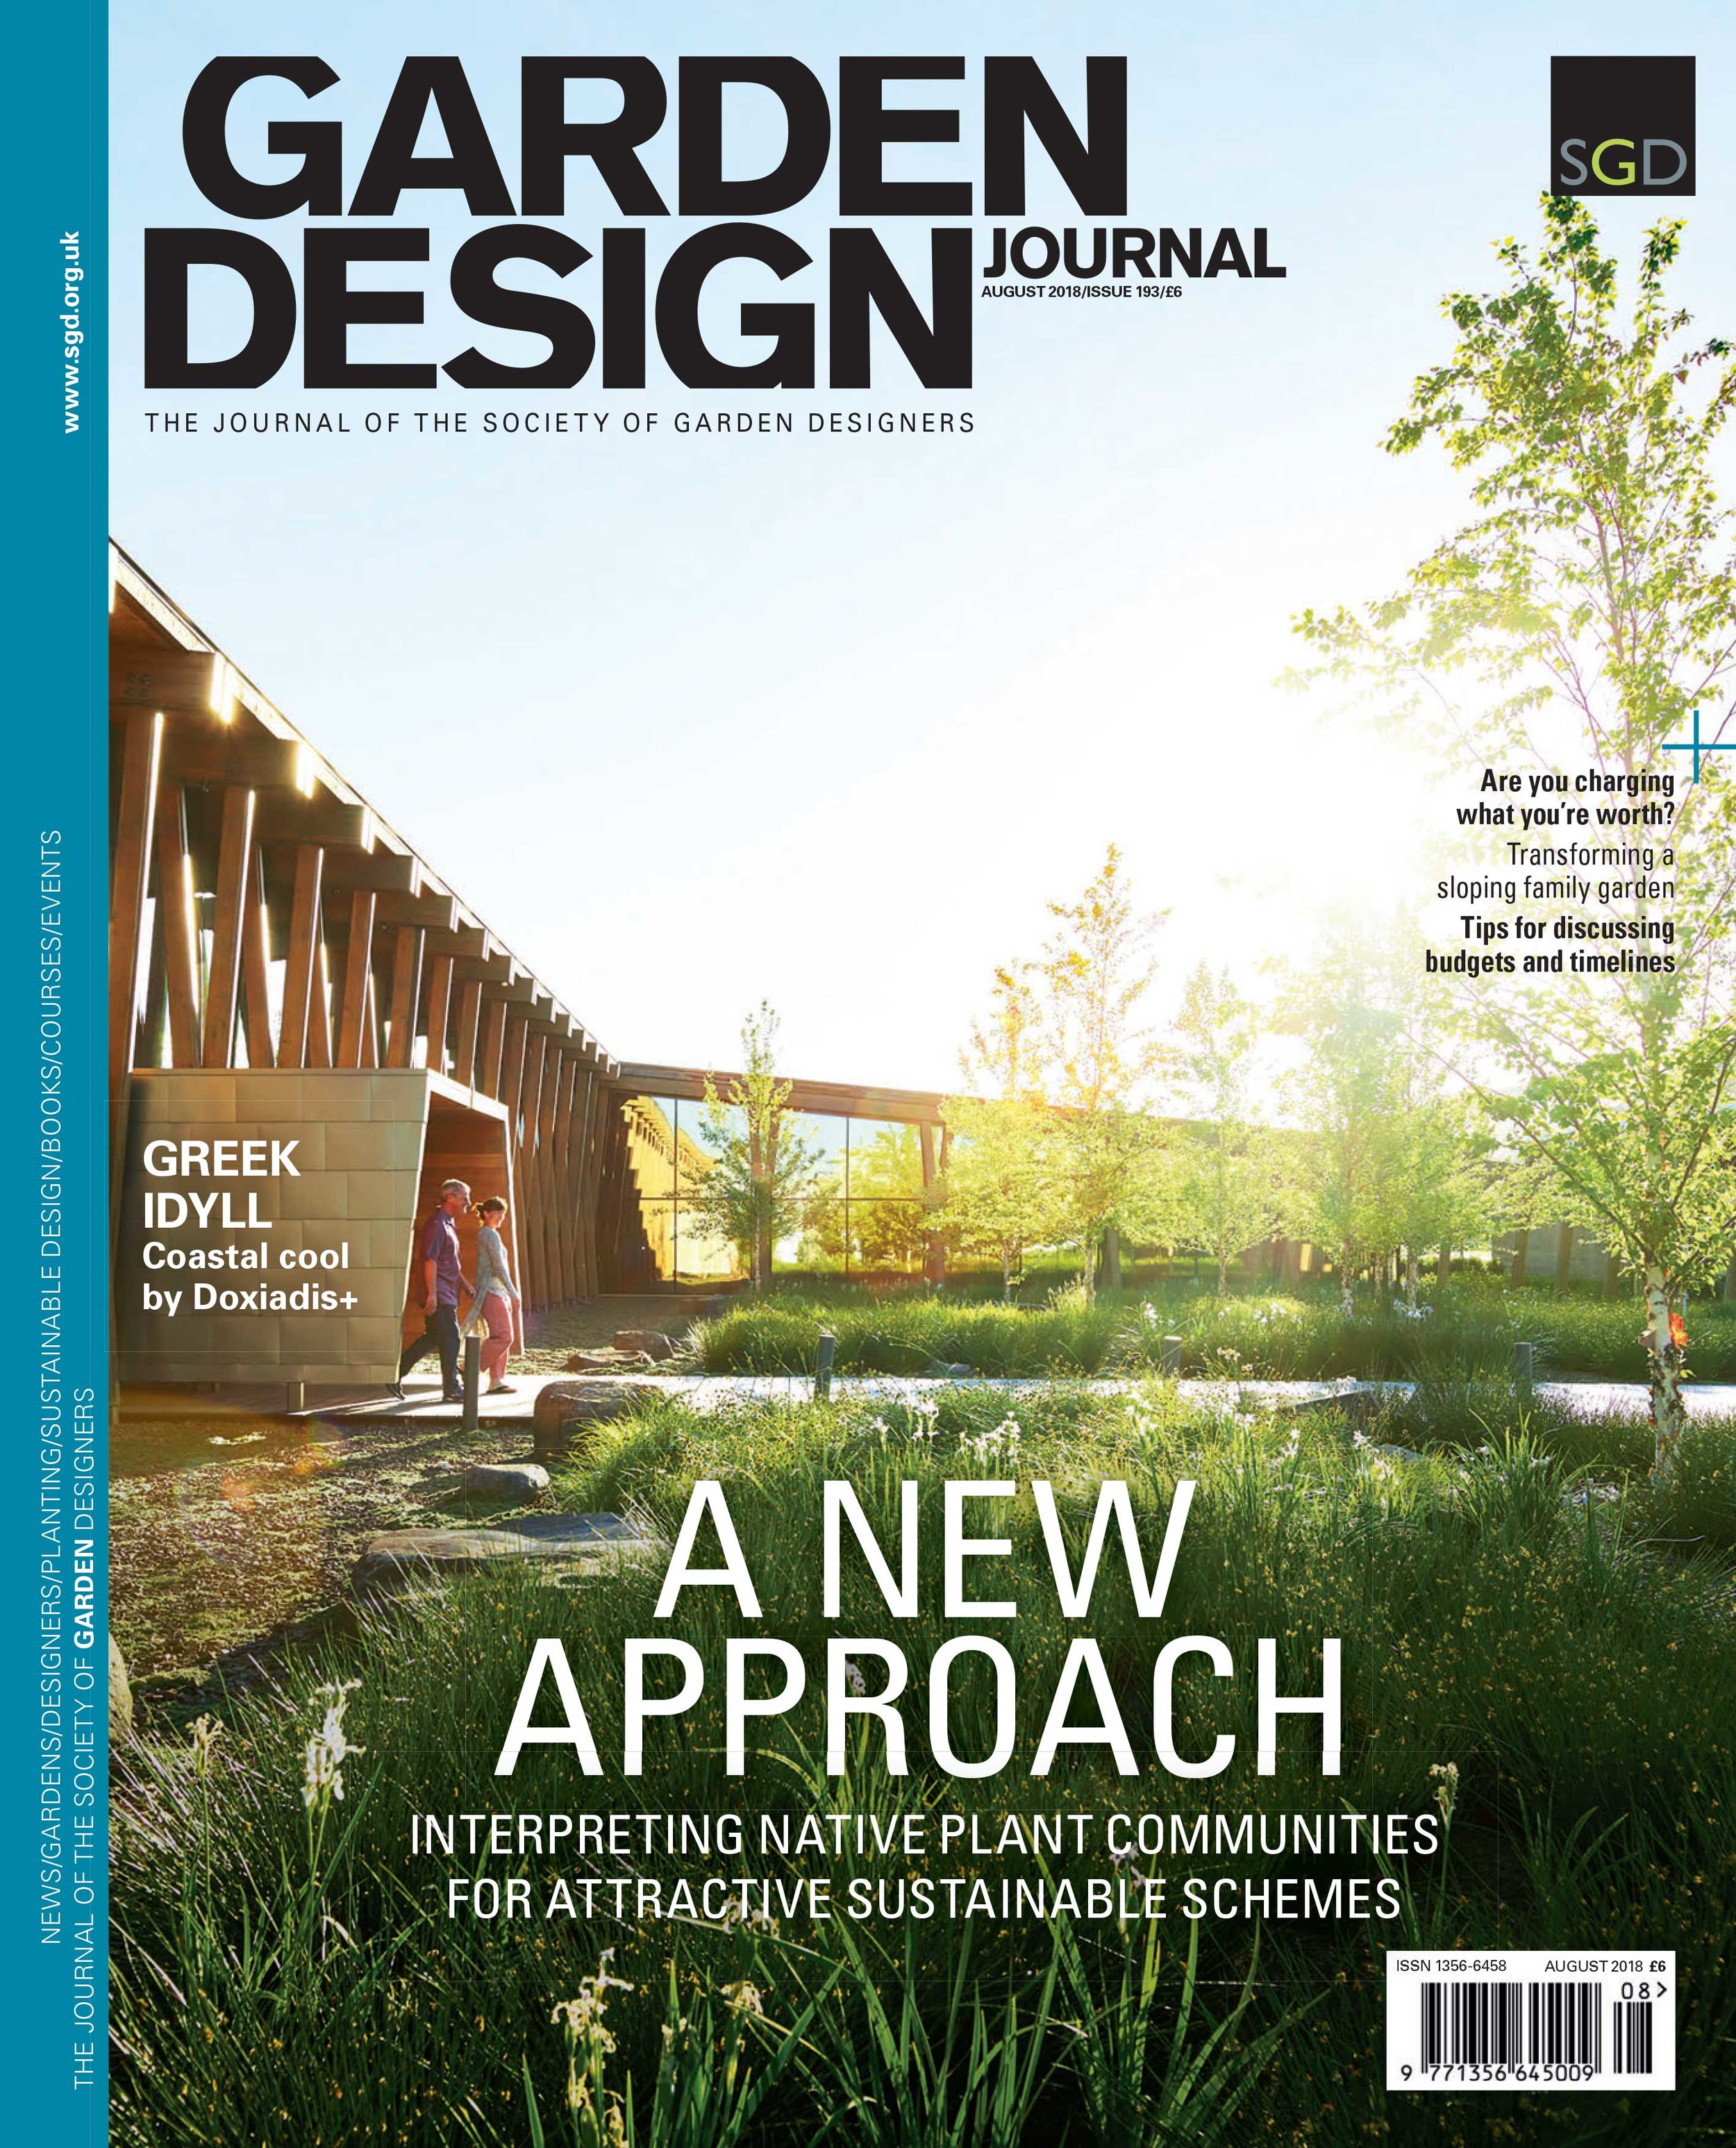 SGD - Garden Design Journal - August 2018 issue